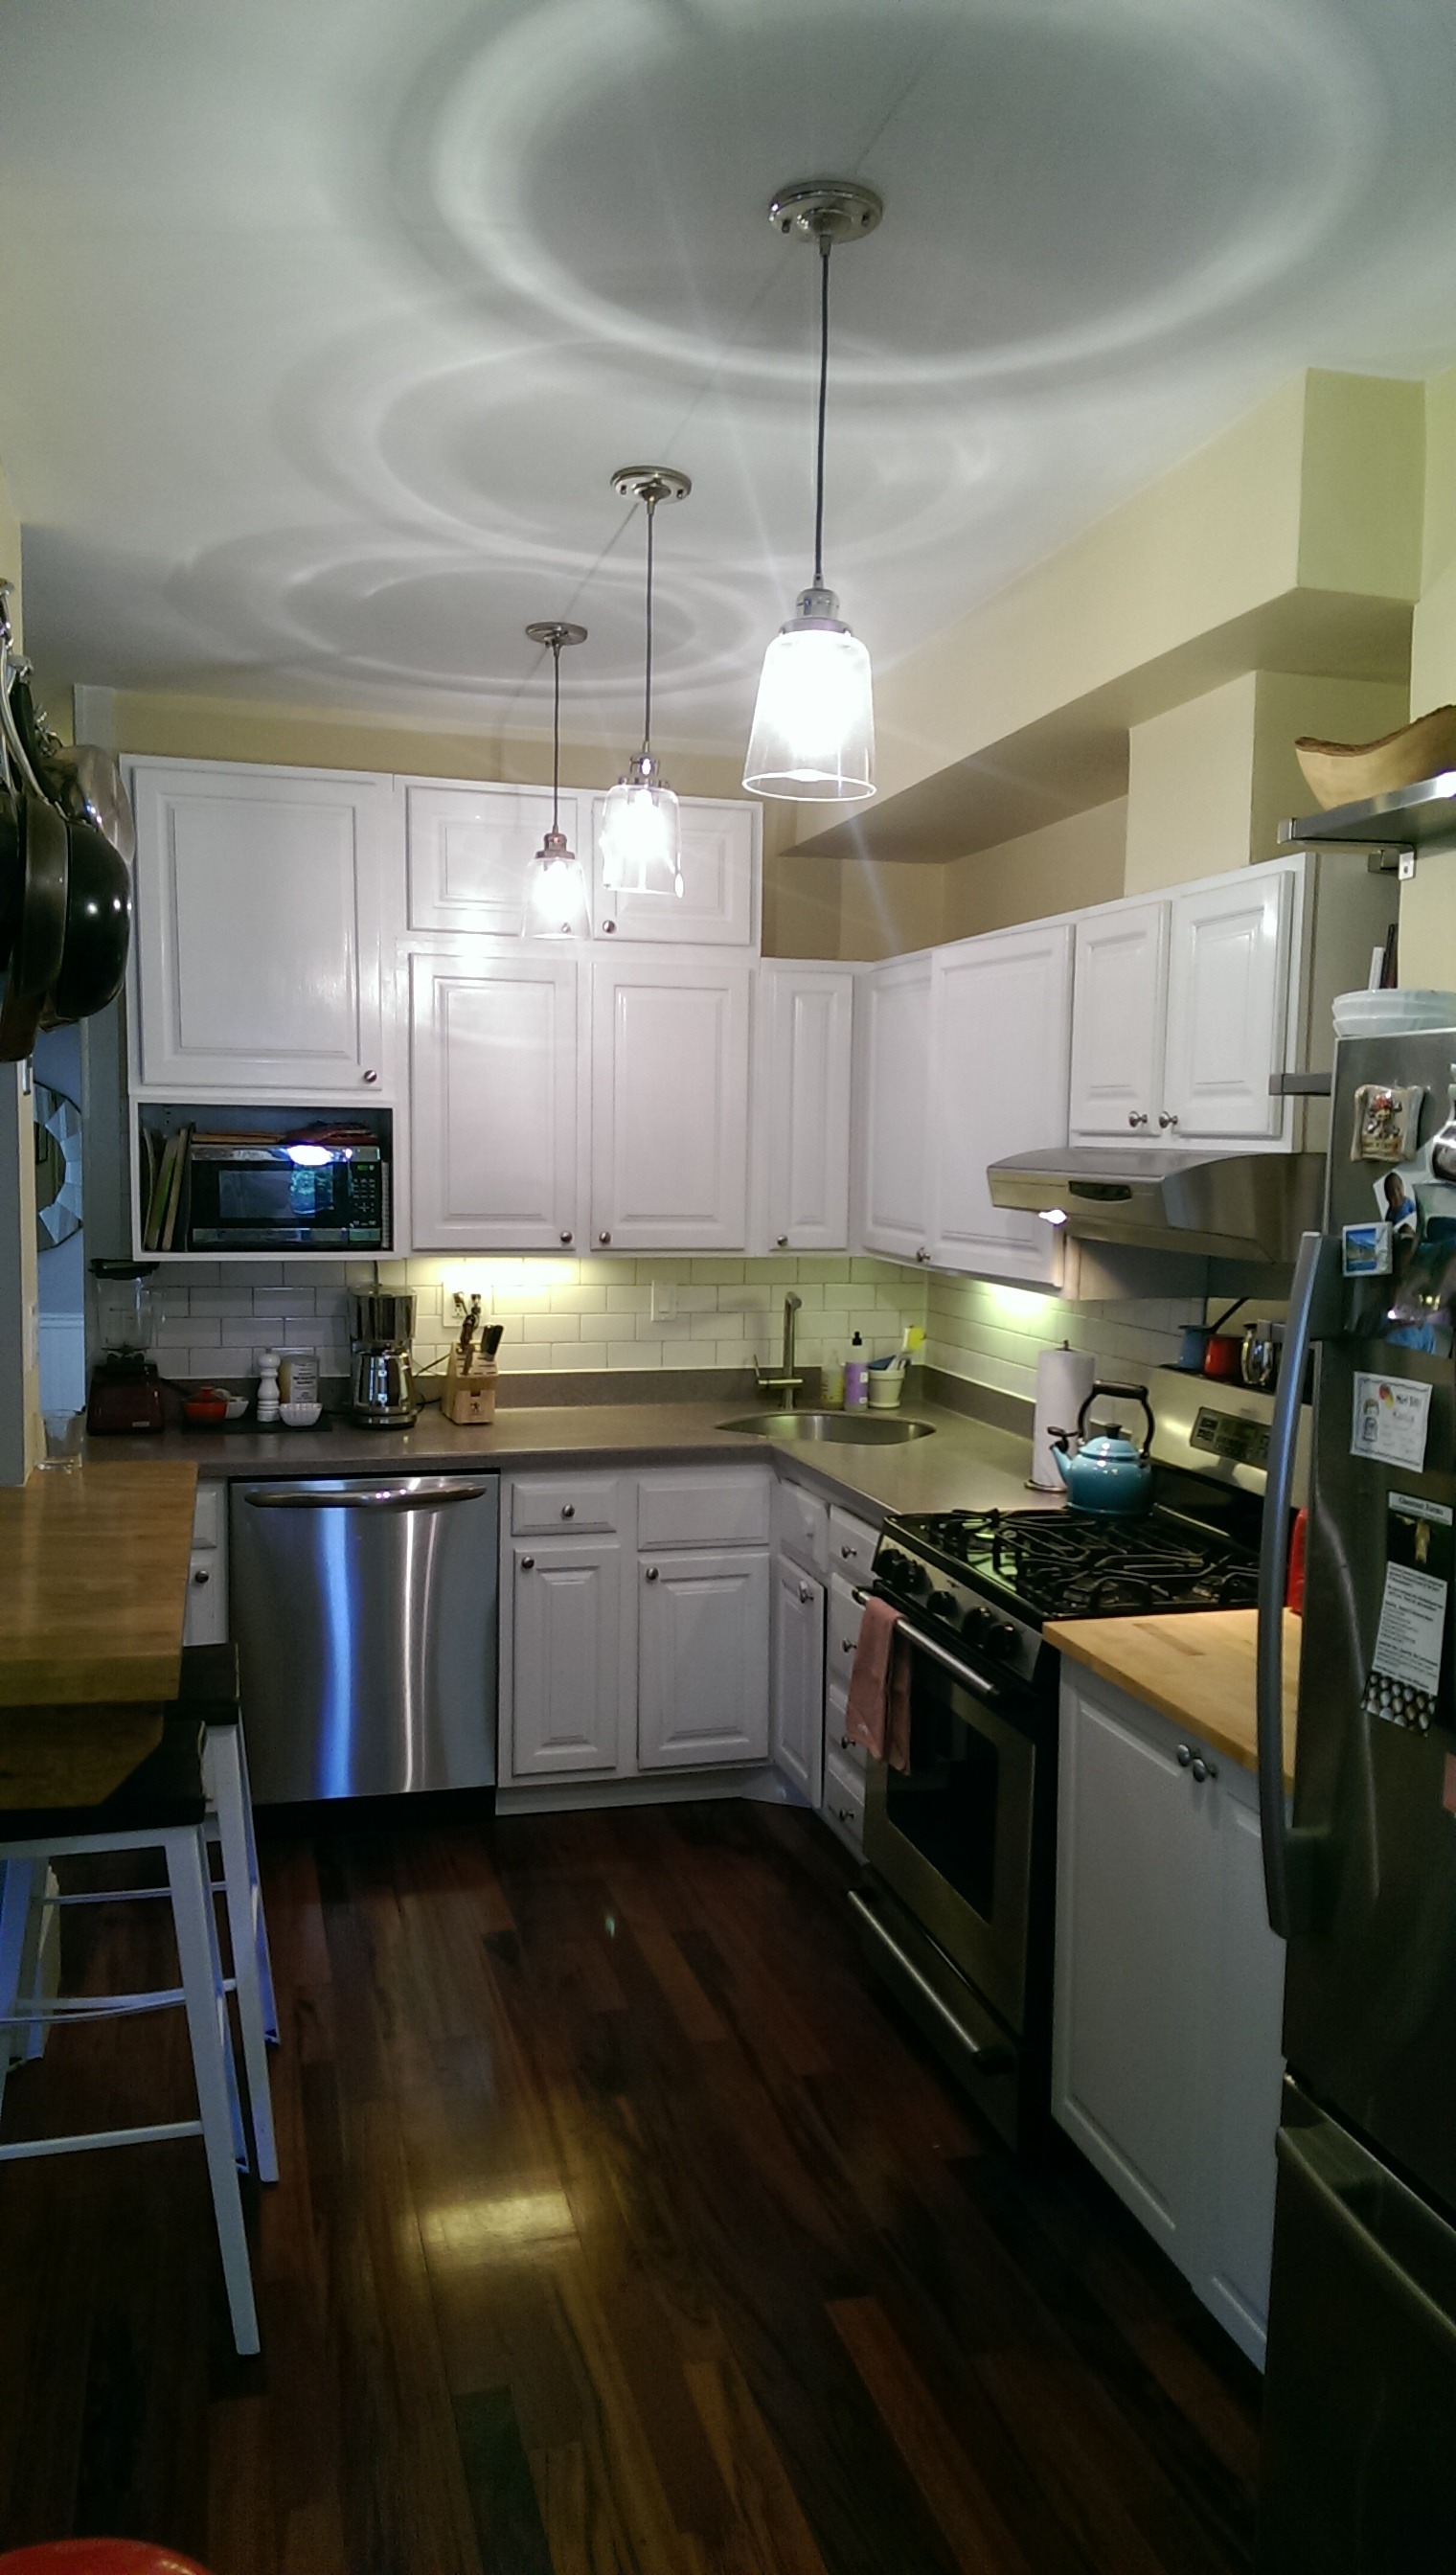 10 Kitchen And Home Decor Items Every 20 Something Needs: Cambridge Apartments: Apartment 1 Bedroom With Deleaded